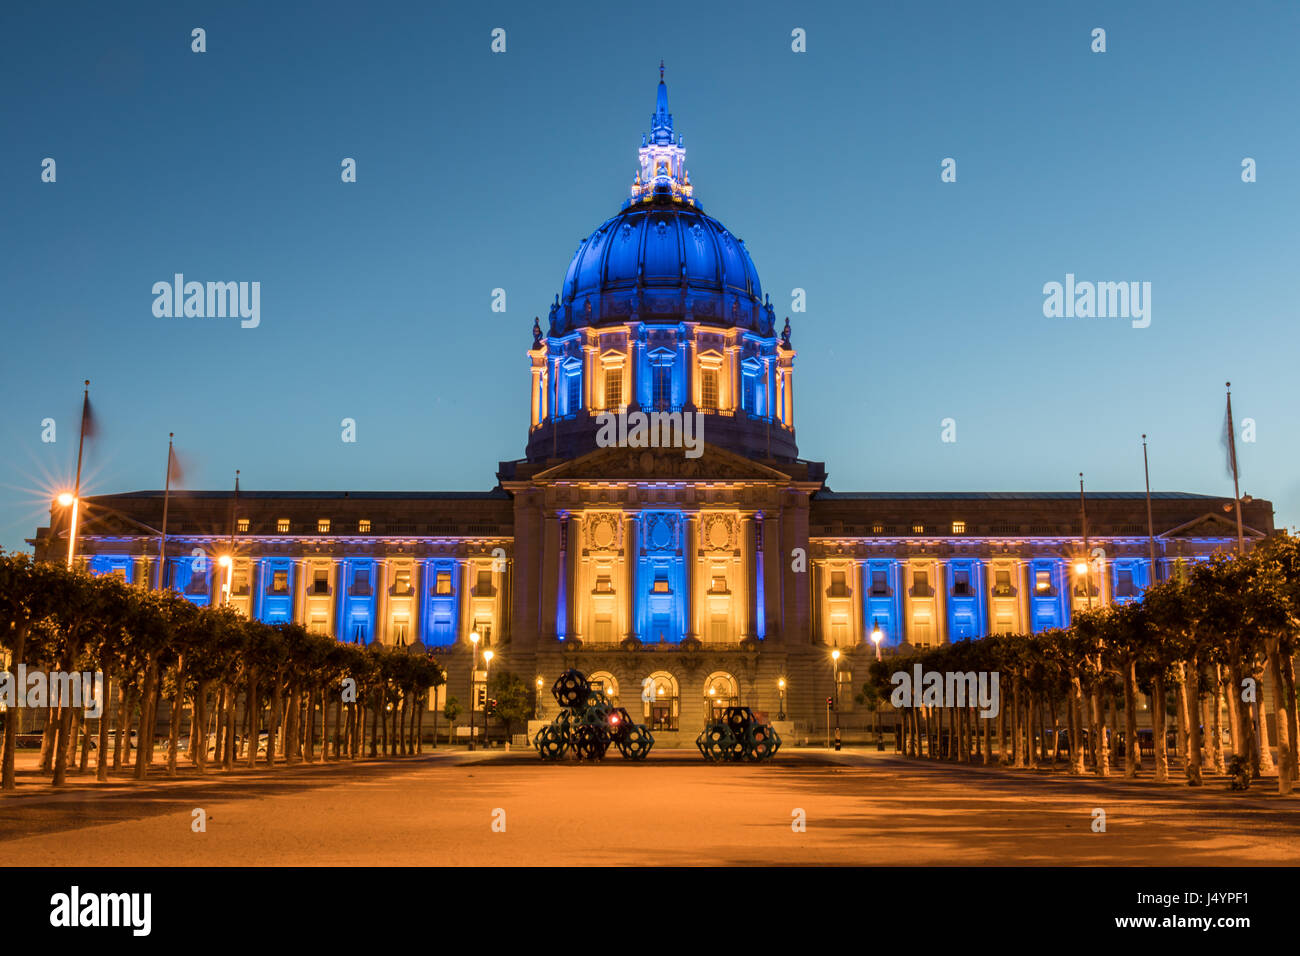 San Francisco City Hall In Golden State Warriors Colors Stock Photo Alamy